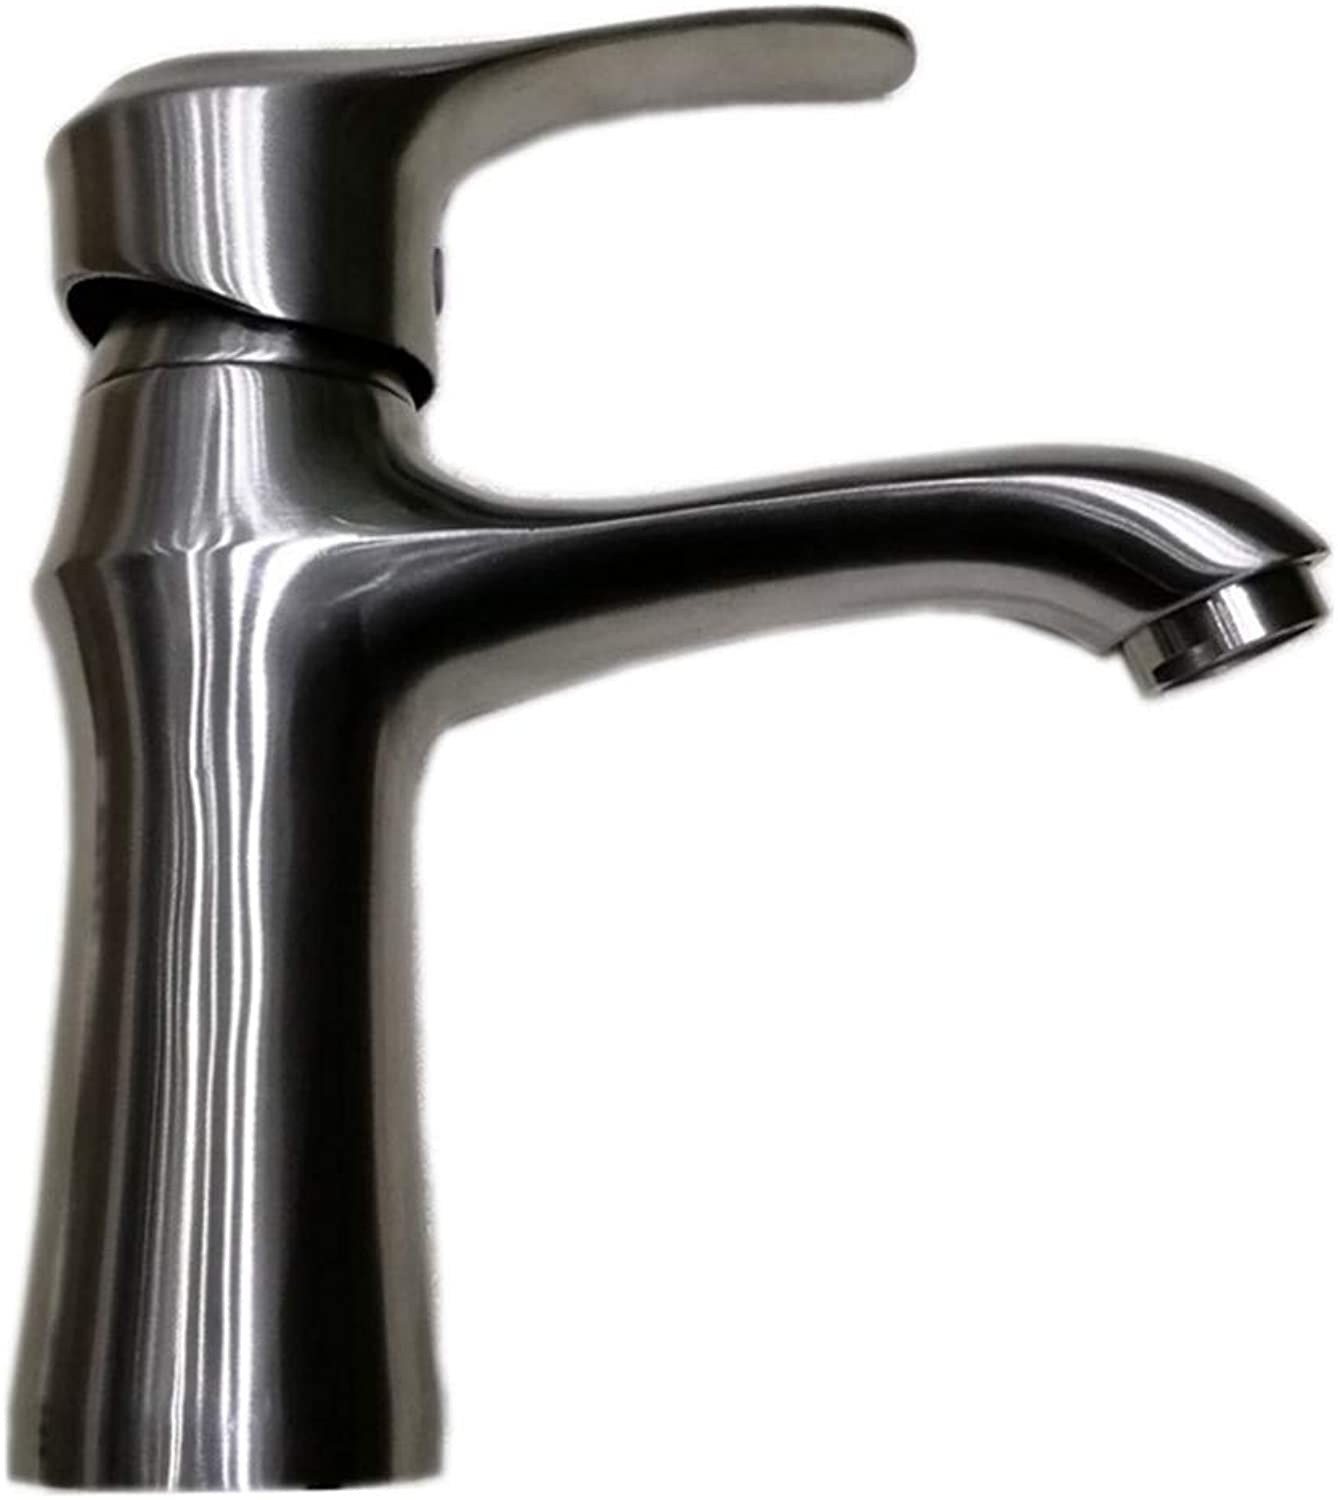 Kitchen Sink Taps Bathroom Taps Stainless Steel Faucet Investment Casting Drawing Cold and Hot Basin Faucet Bathroom Washbasin Mixing Faucet